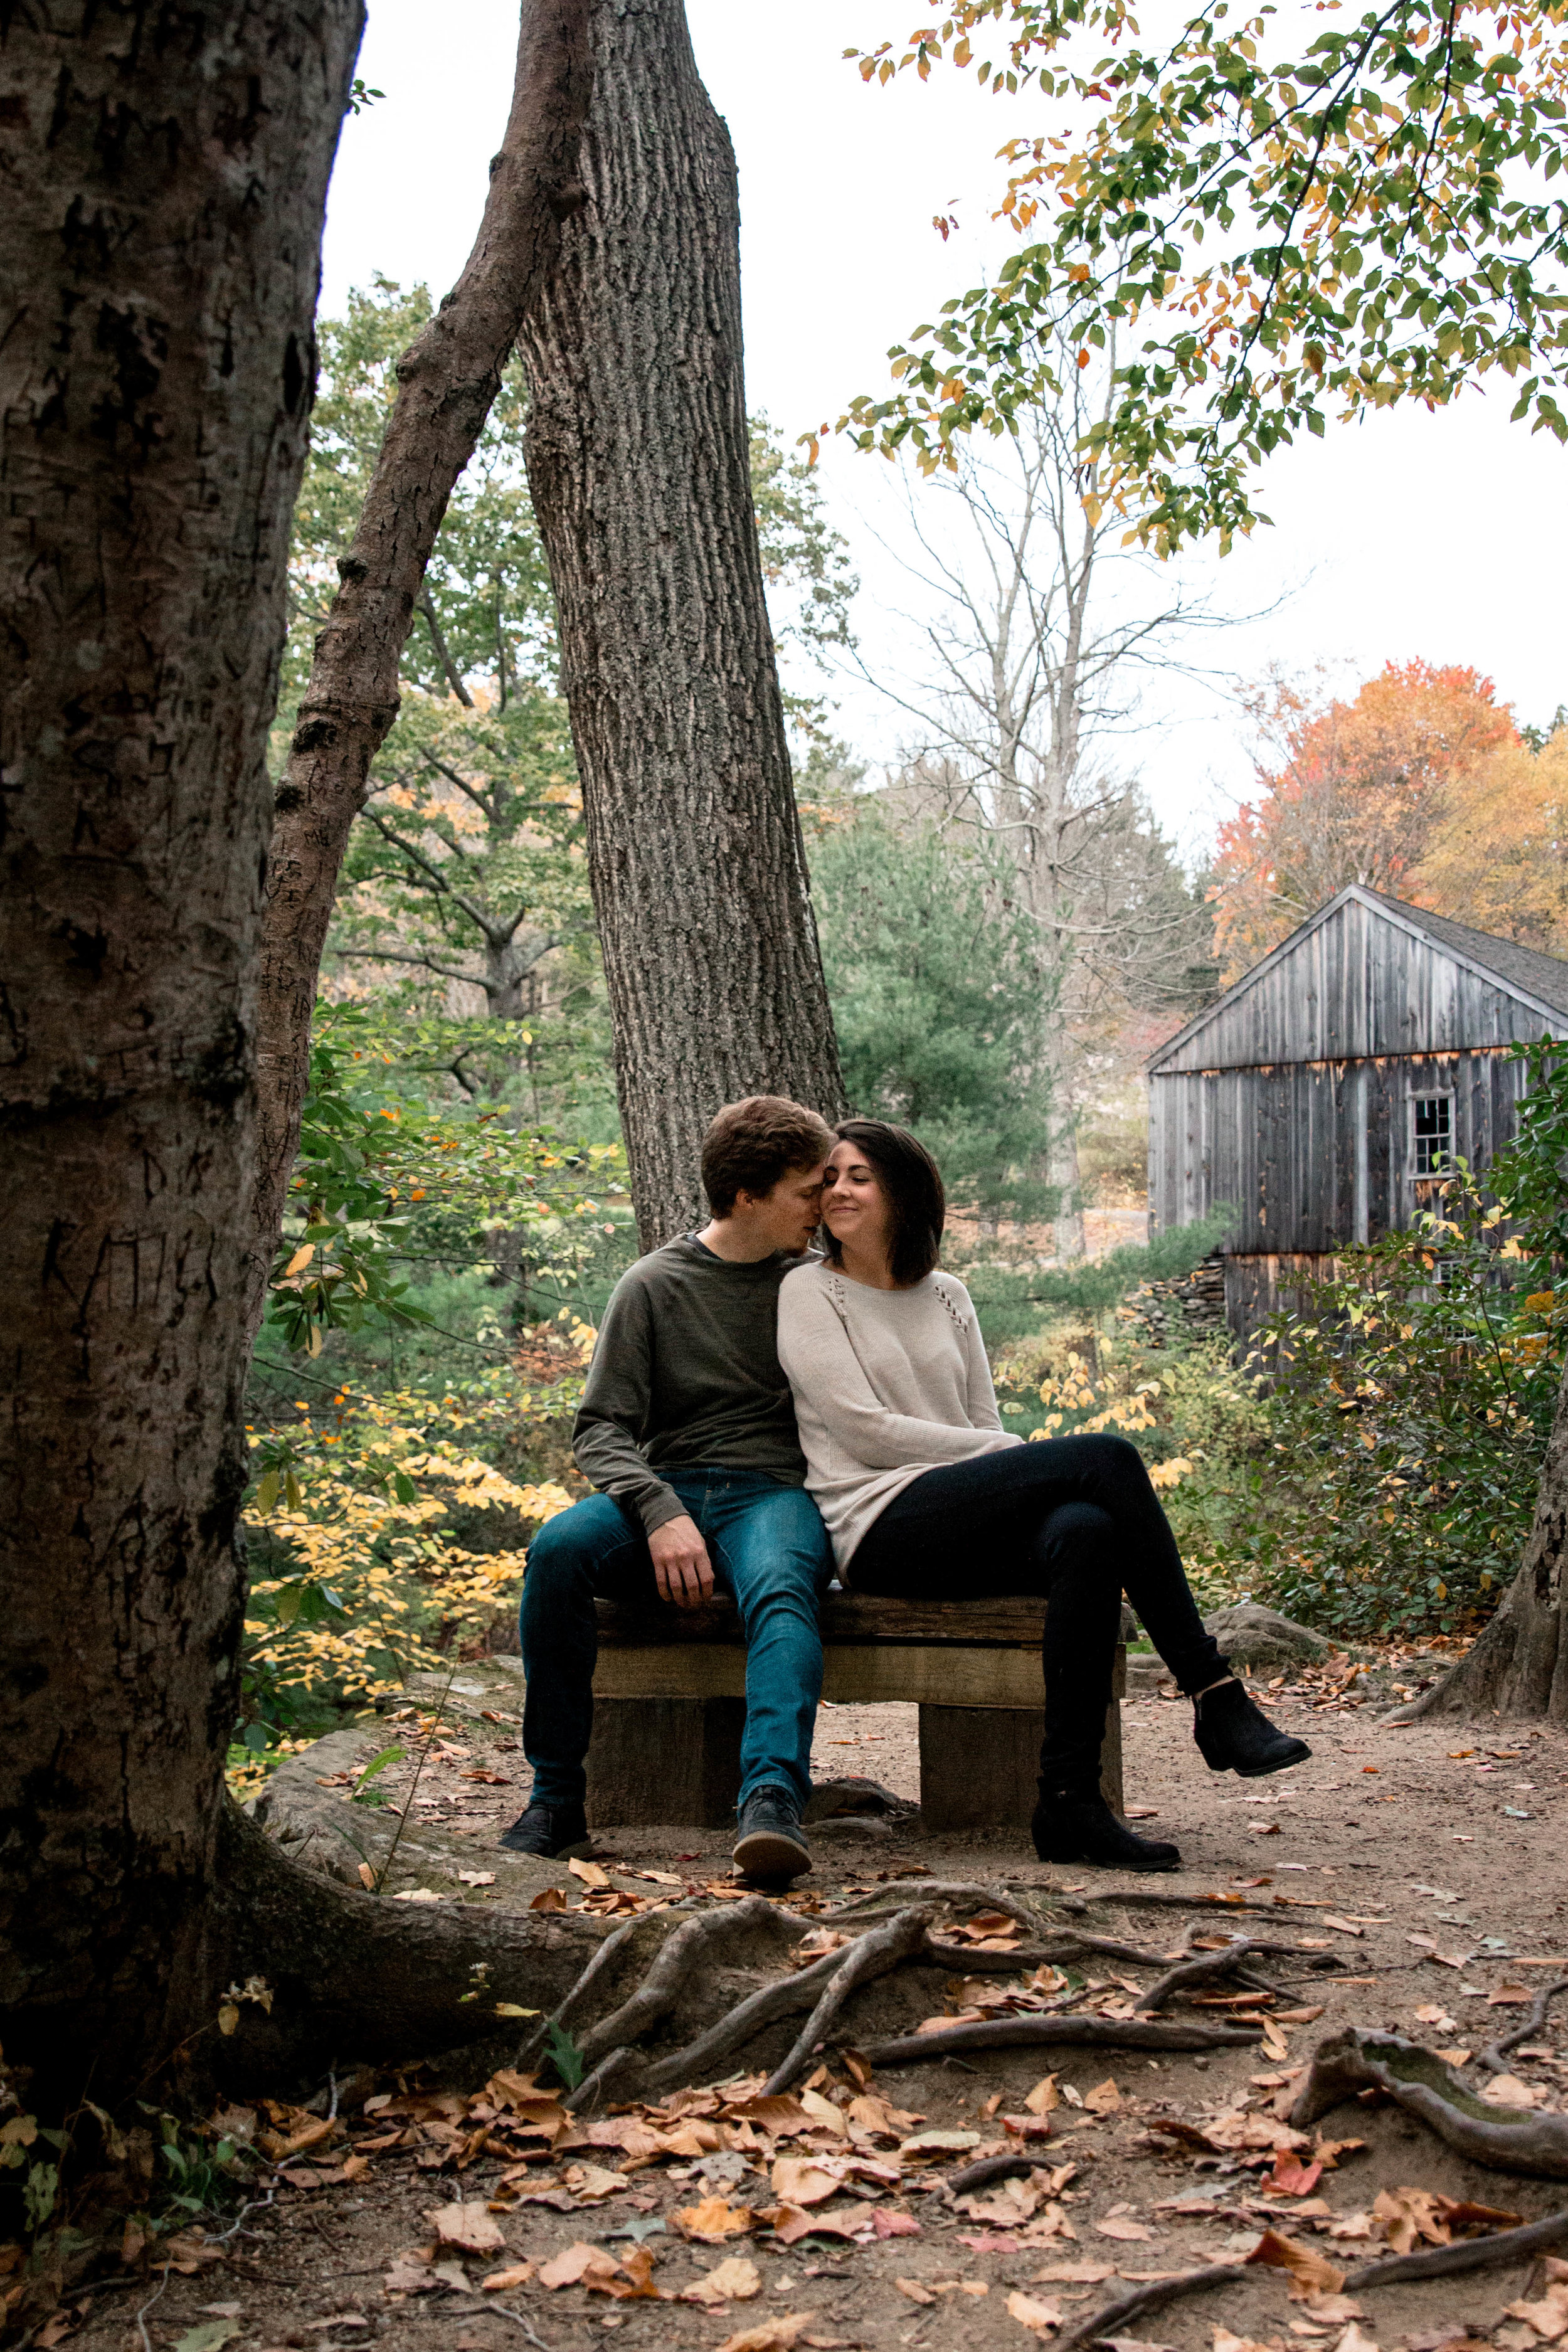 couple sitting on bench surrounded by fall foliage and wooden barn